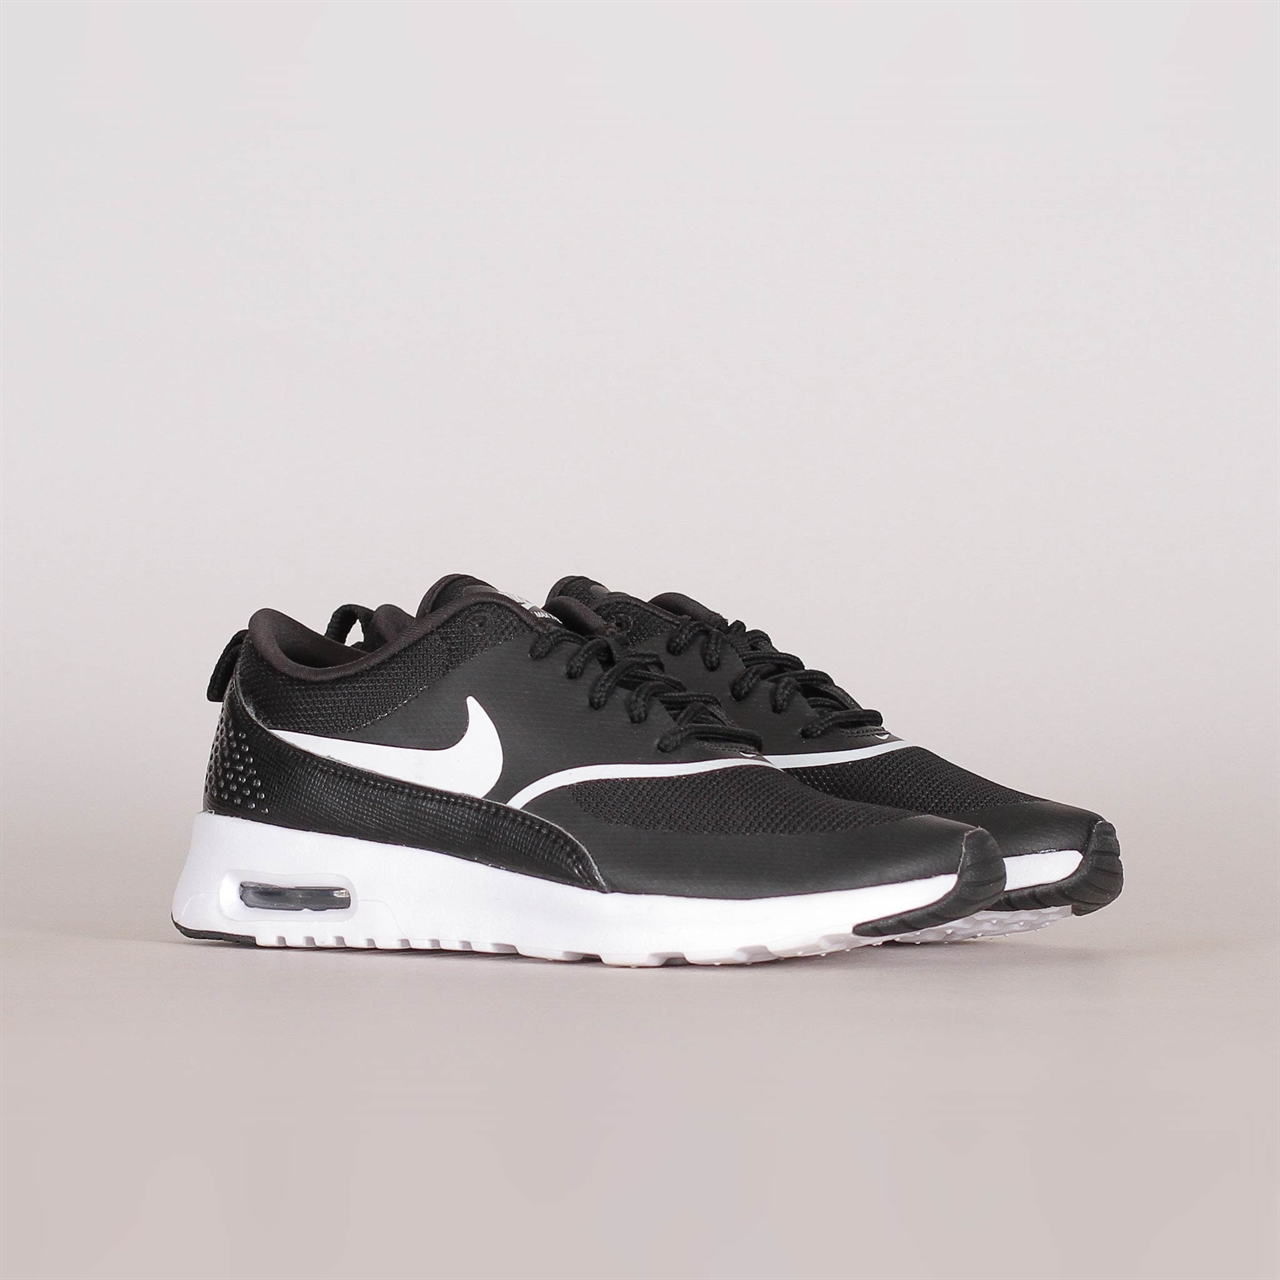 9c916be140 Nike Sportswear Womens Air Max Thea (599409-028) - Shelta